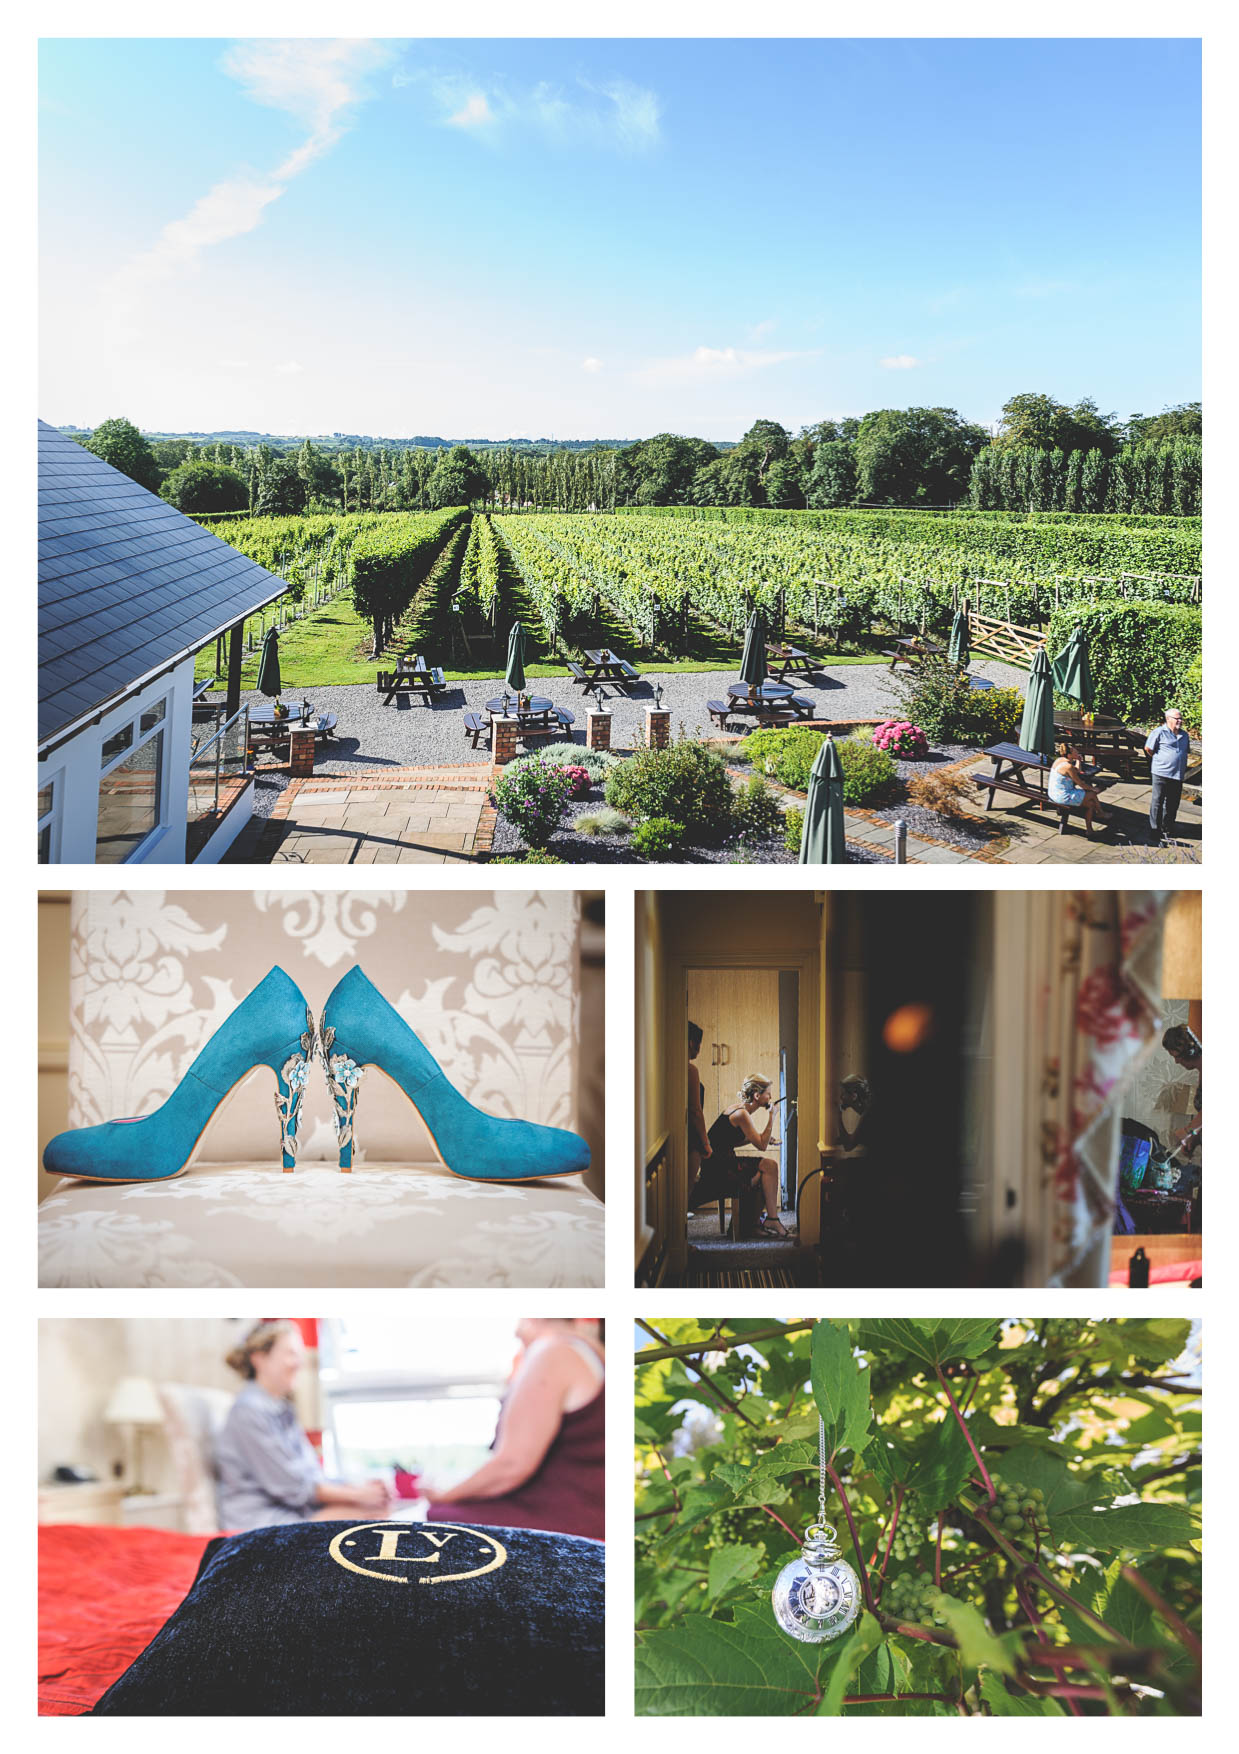 Photographs by wedding photographer owen mathias at llanerch vineyard while a bride is getting ready for her wedding in the cariad suite